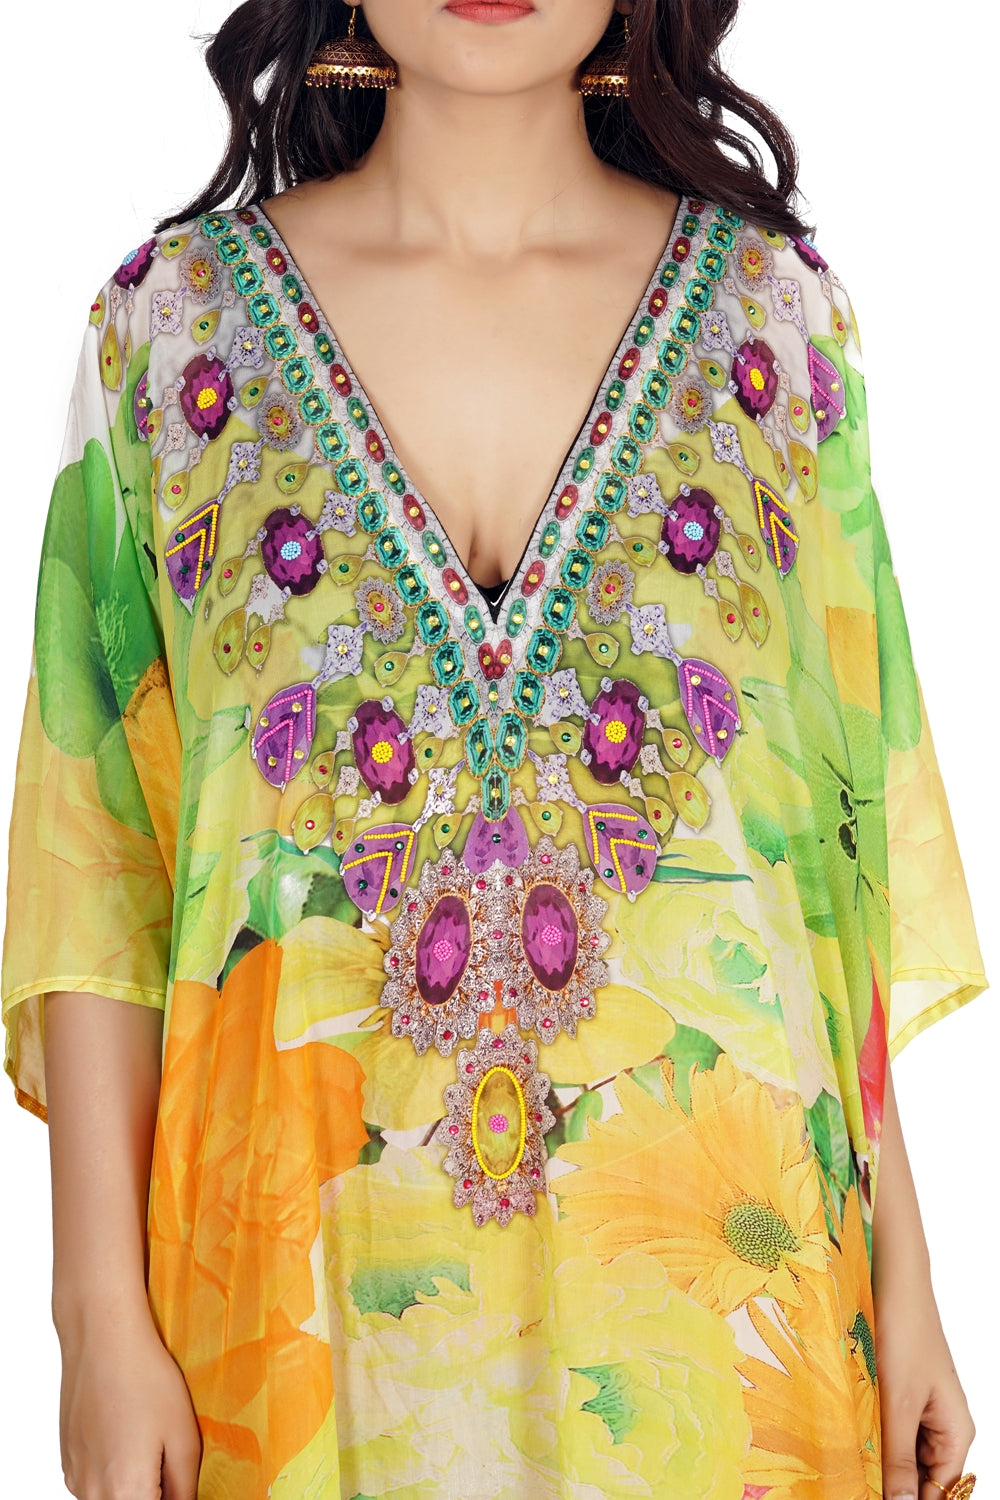 Enchanting Abstract Floral Silk Evening Kaftan in large Floral Pattern hand beaded silk caftan tunic - Silk kaftan